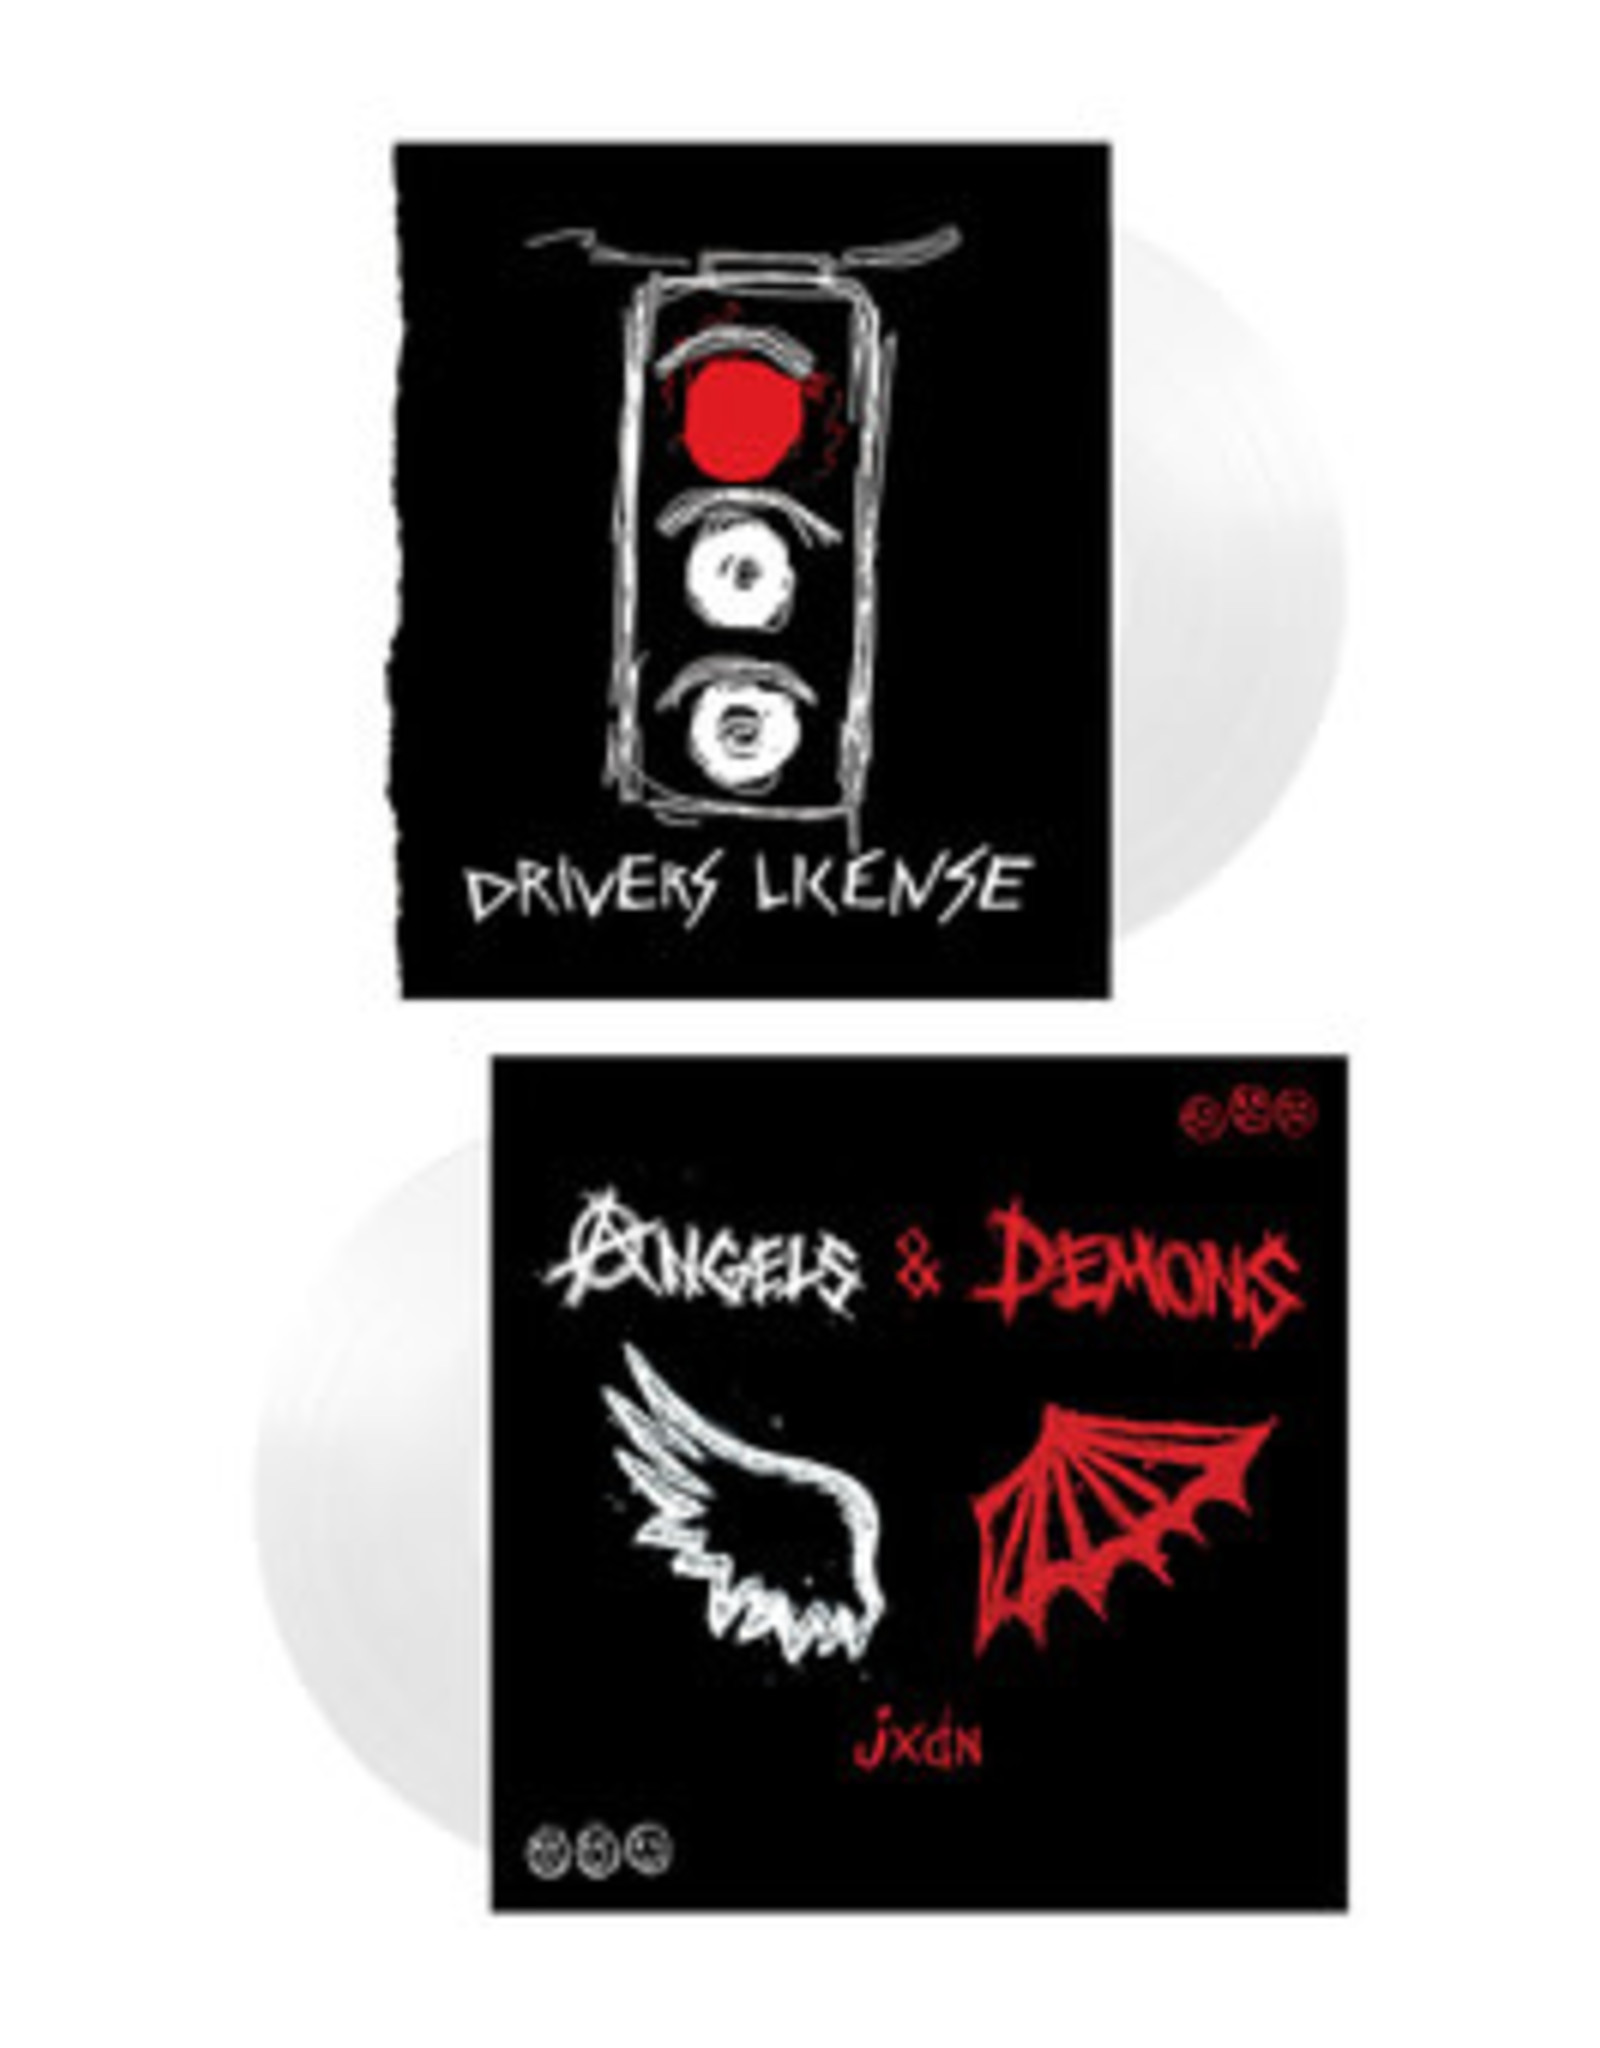 JXDN - Angels and Demons/Drivers License (RSD 7/21)